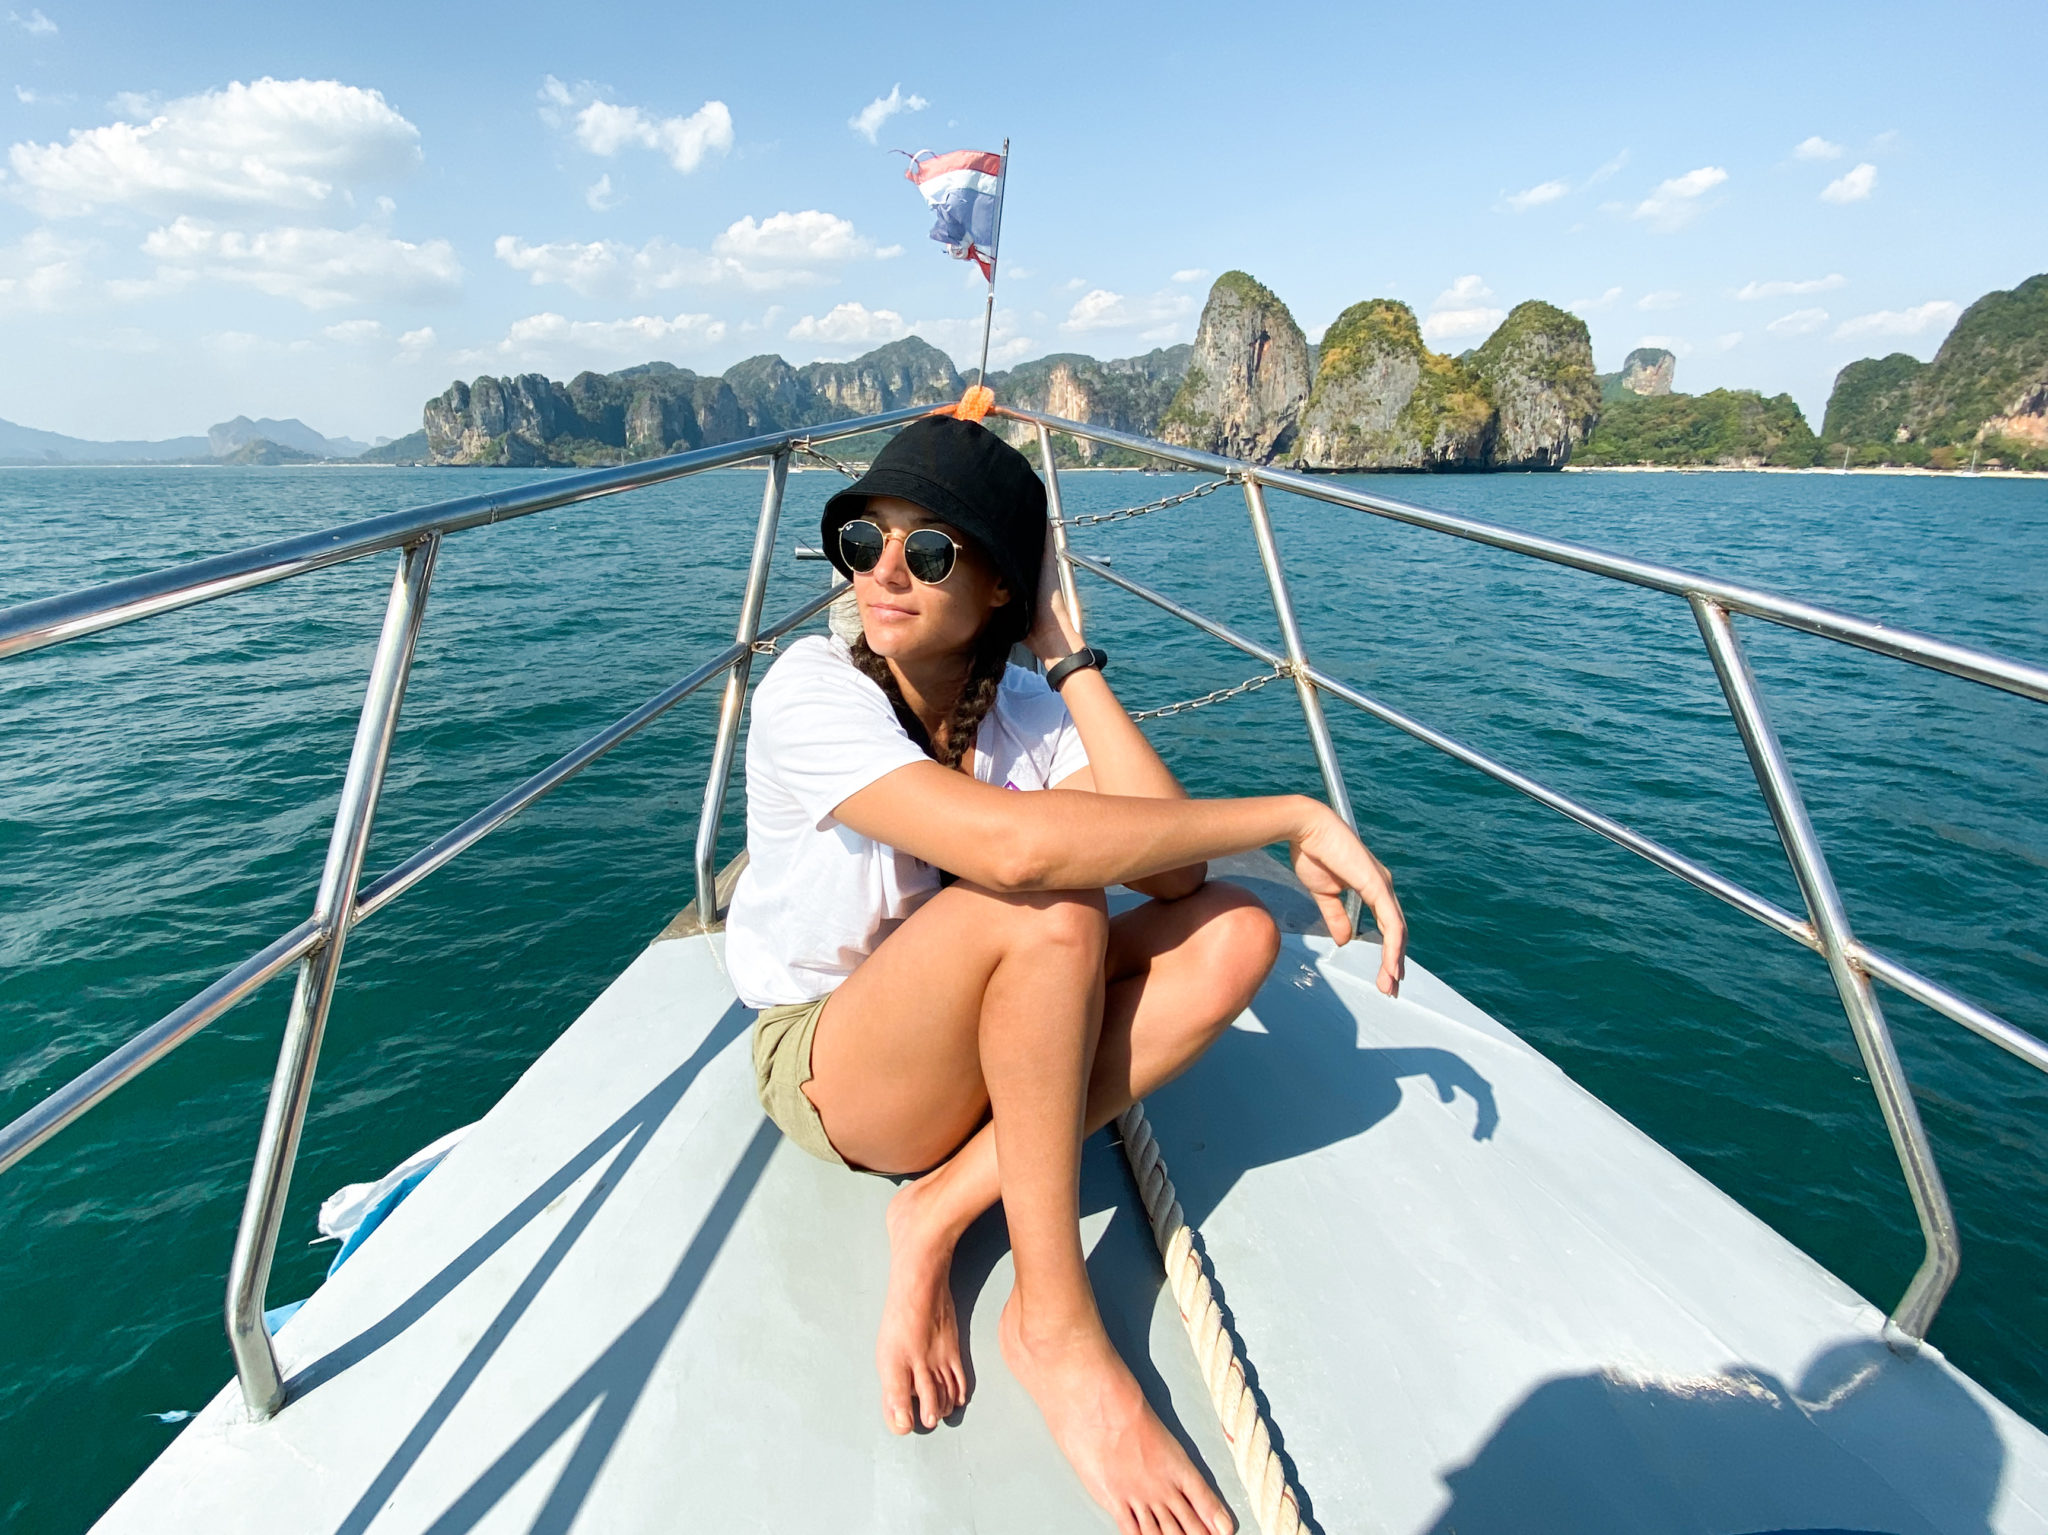 Railay Beach, Krabi   Everything you need to know to spend a great holiday in Railay   Travel Blogger tips about Thailand by Michaella from Quite a Looker